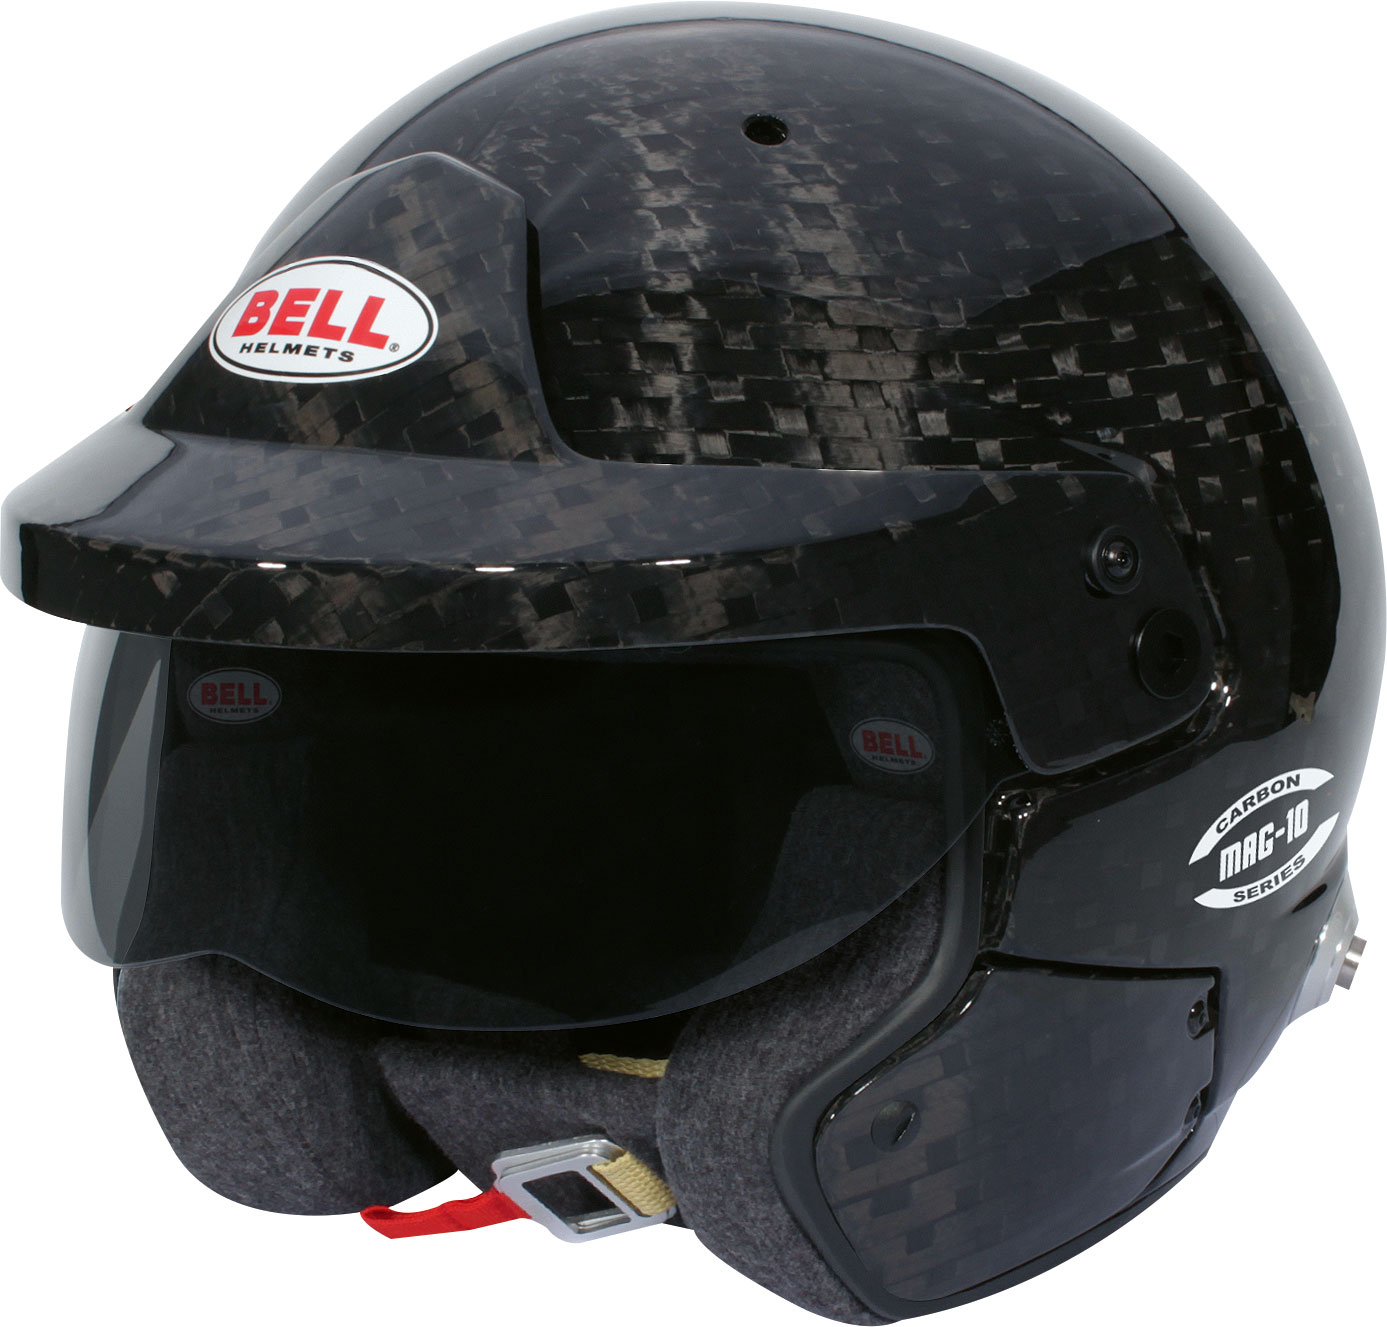 BELL Helm MAG-10 Carbon